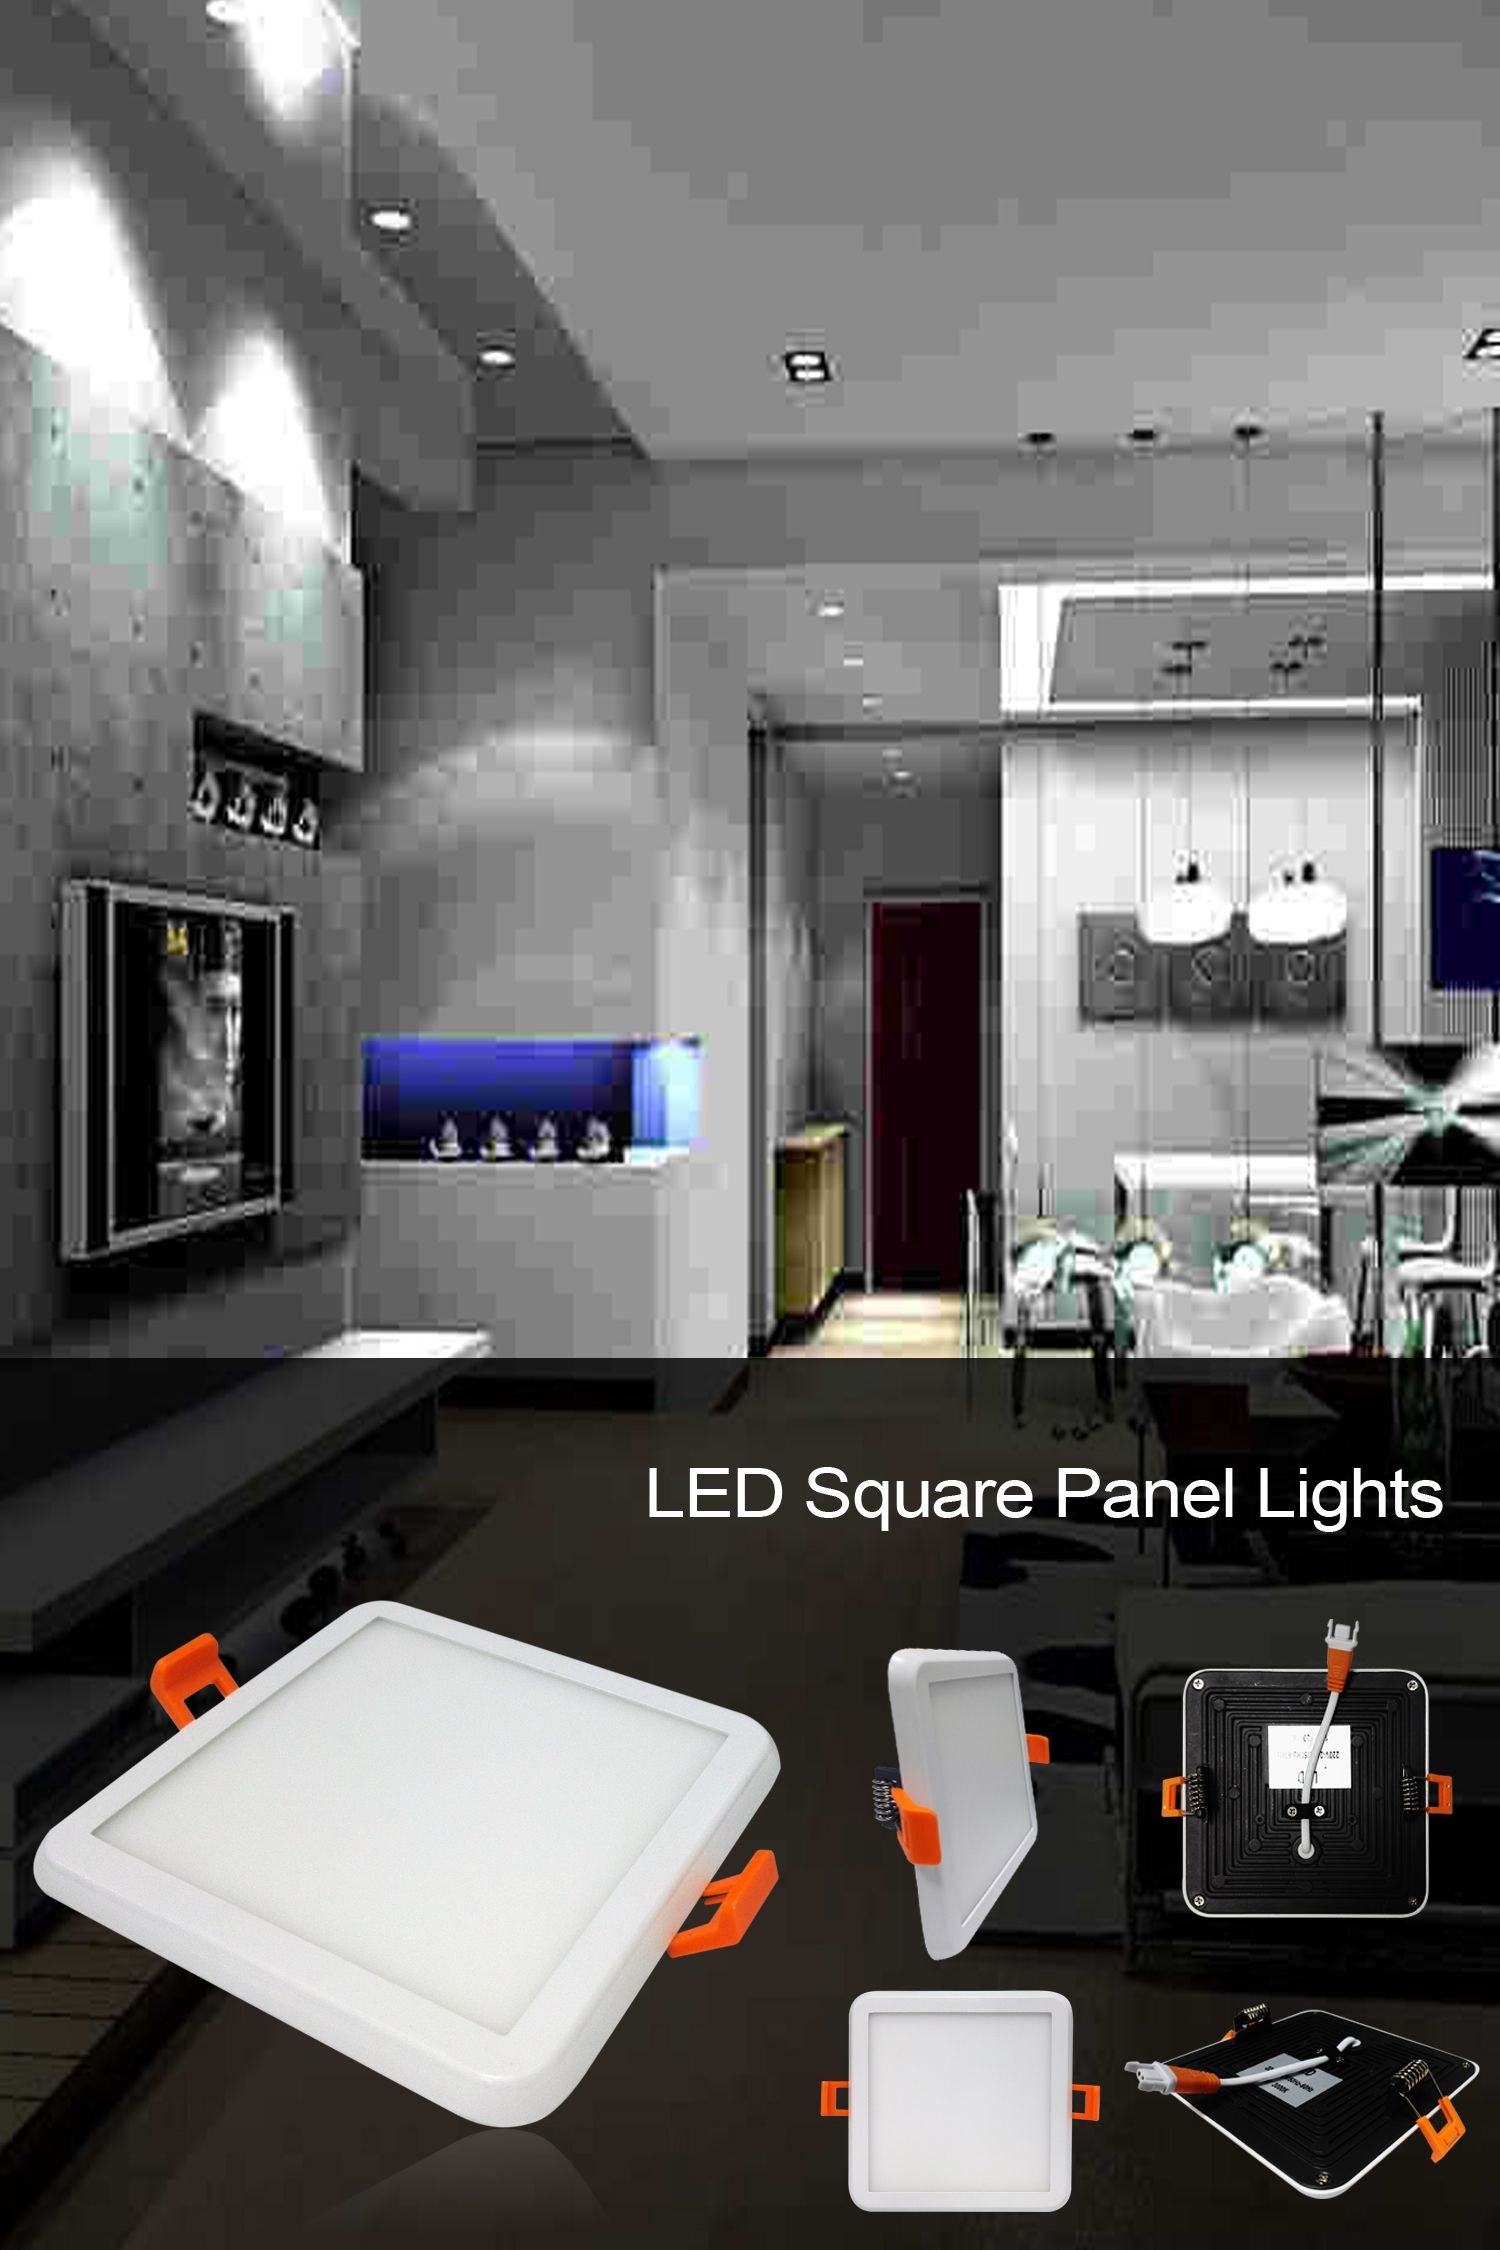 Ultra Thin Led Square Downlight For Living Room And Bedroom As Well As Office Space Products Aesthetics And So Recessed Can Lights Recessed Ceiling Long Lamp